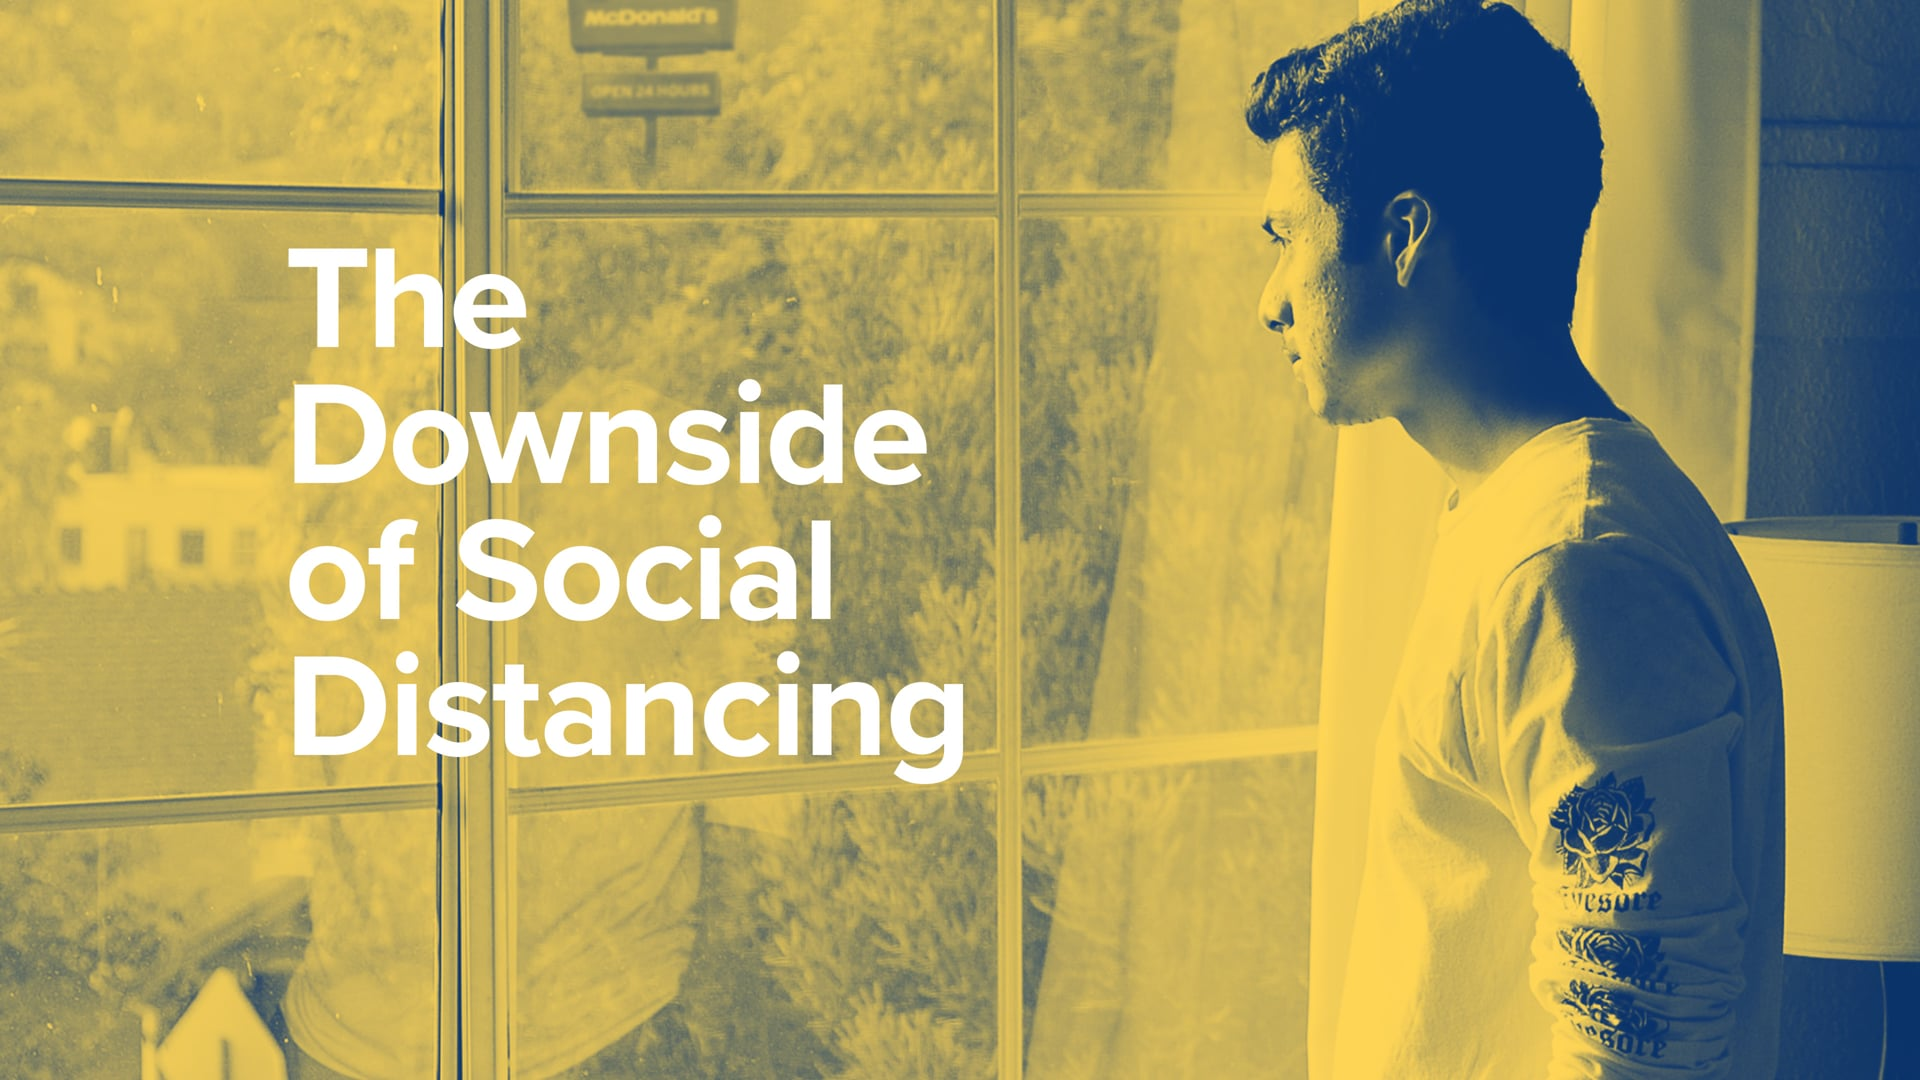 The Downside of Social Distancing